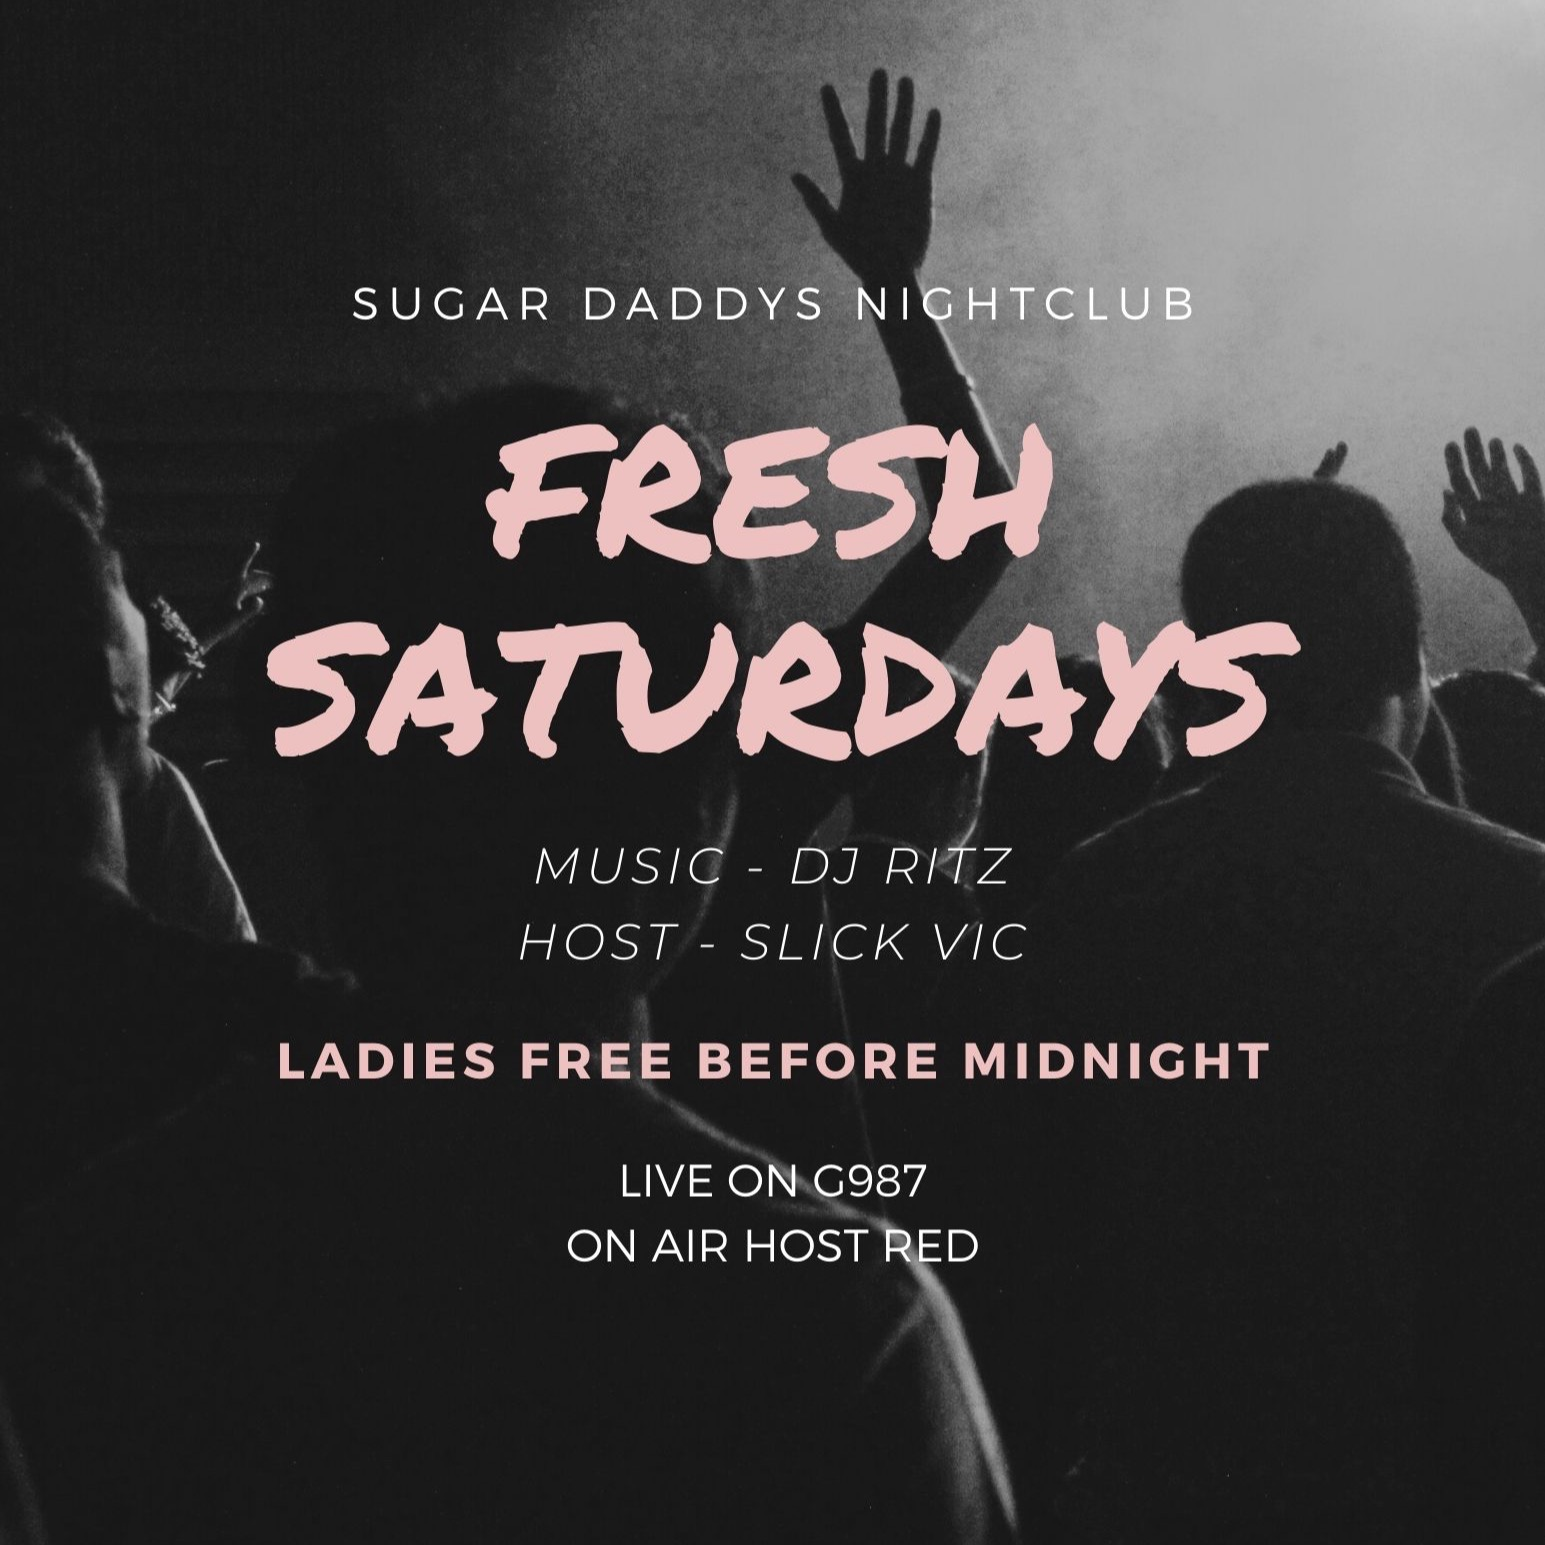 FRESH SATURDAYS SUGAR DADDYS LADIES FREE B4 MIDNIGHT LIVE G987 W/ DJ RITZ